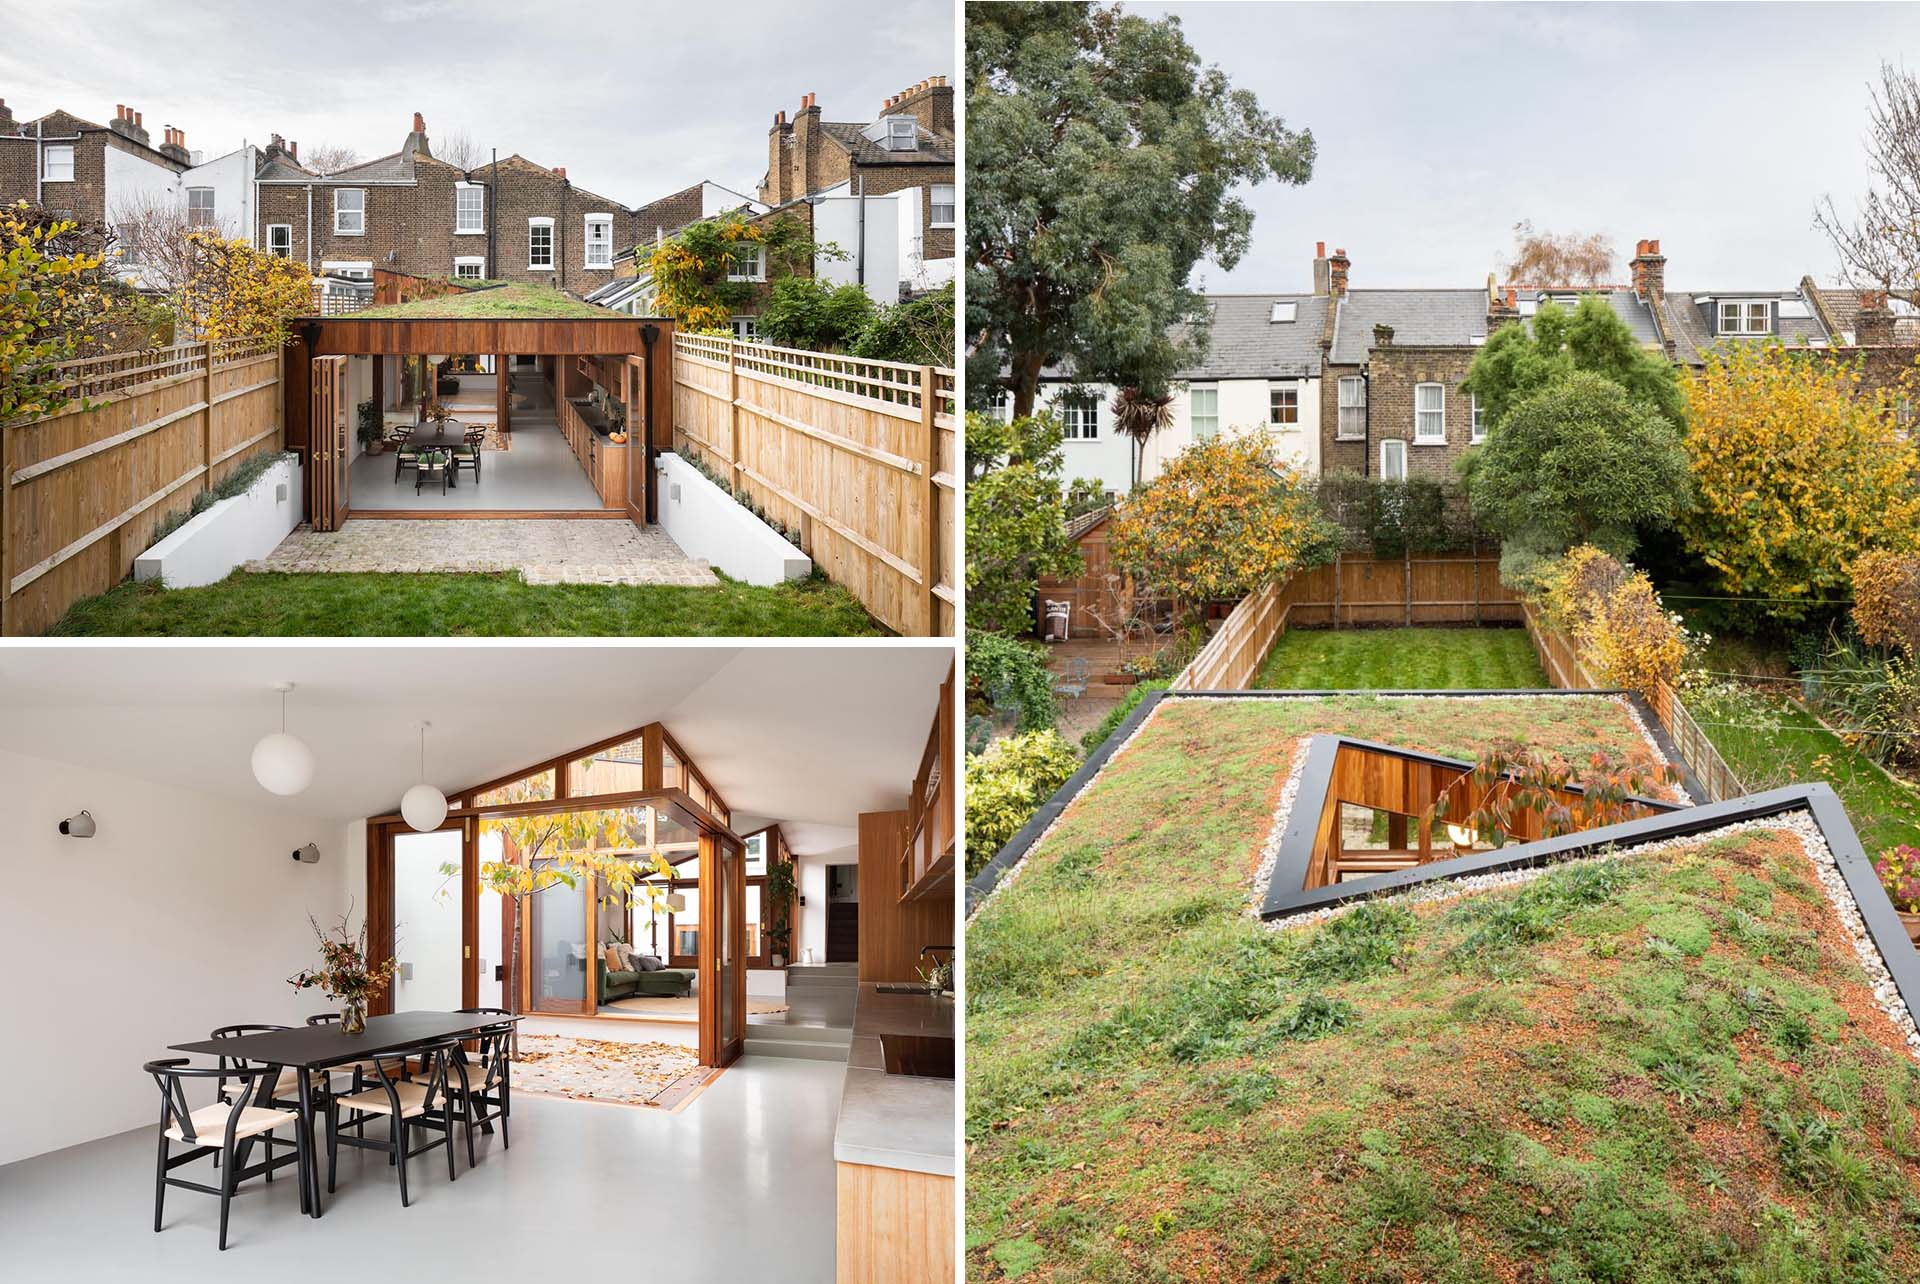 A modern home extension with a green roof, minimalist interior, and warm wood window frames.